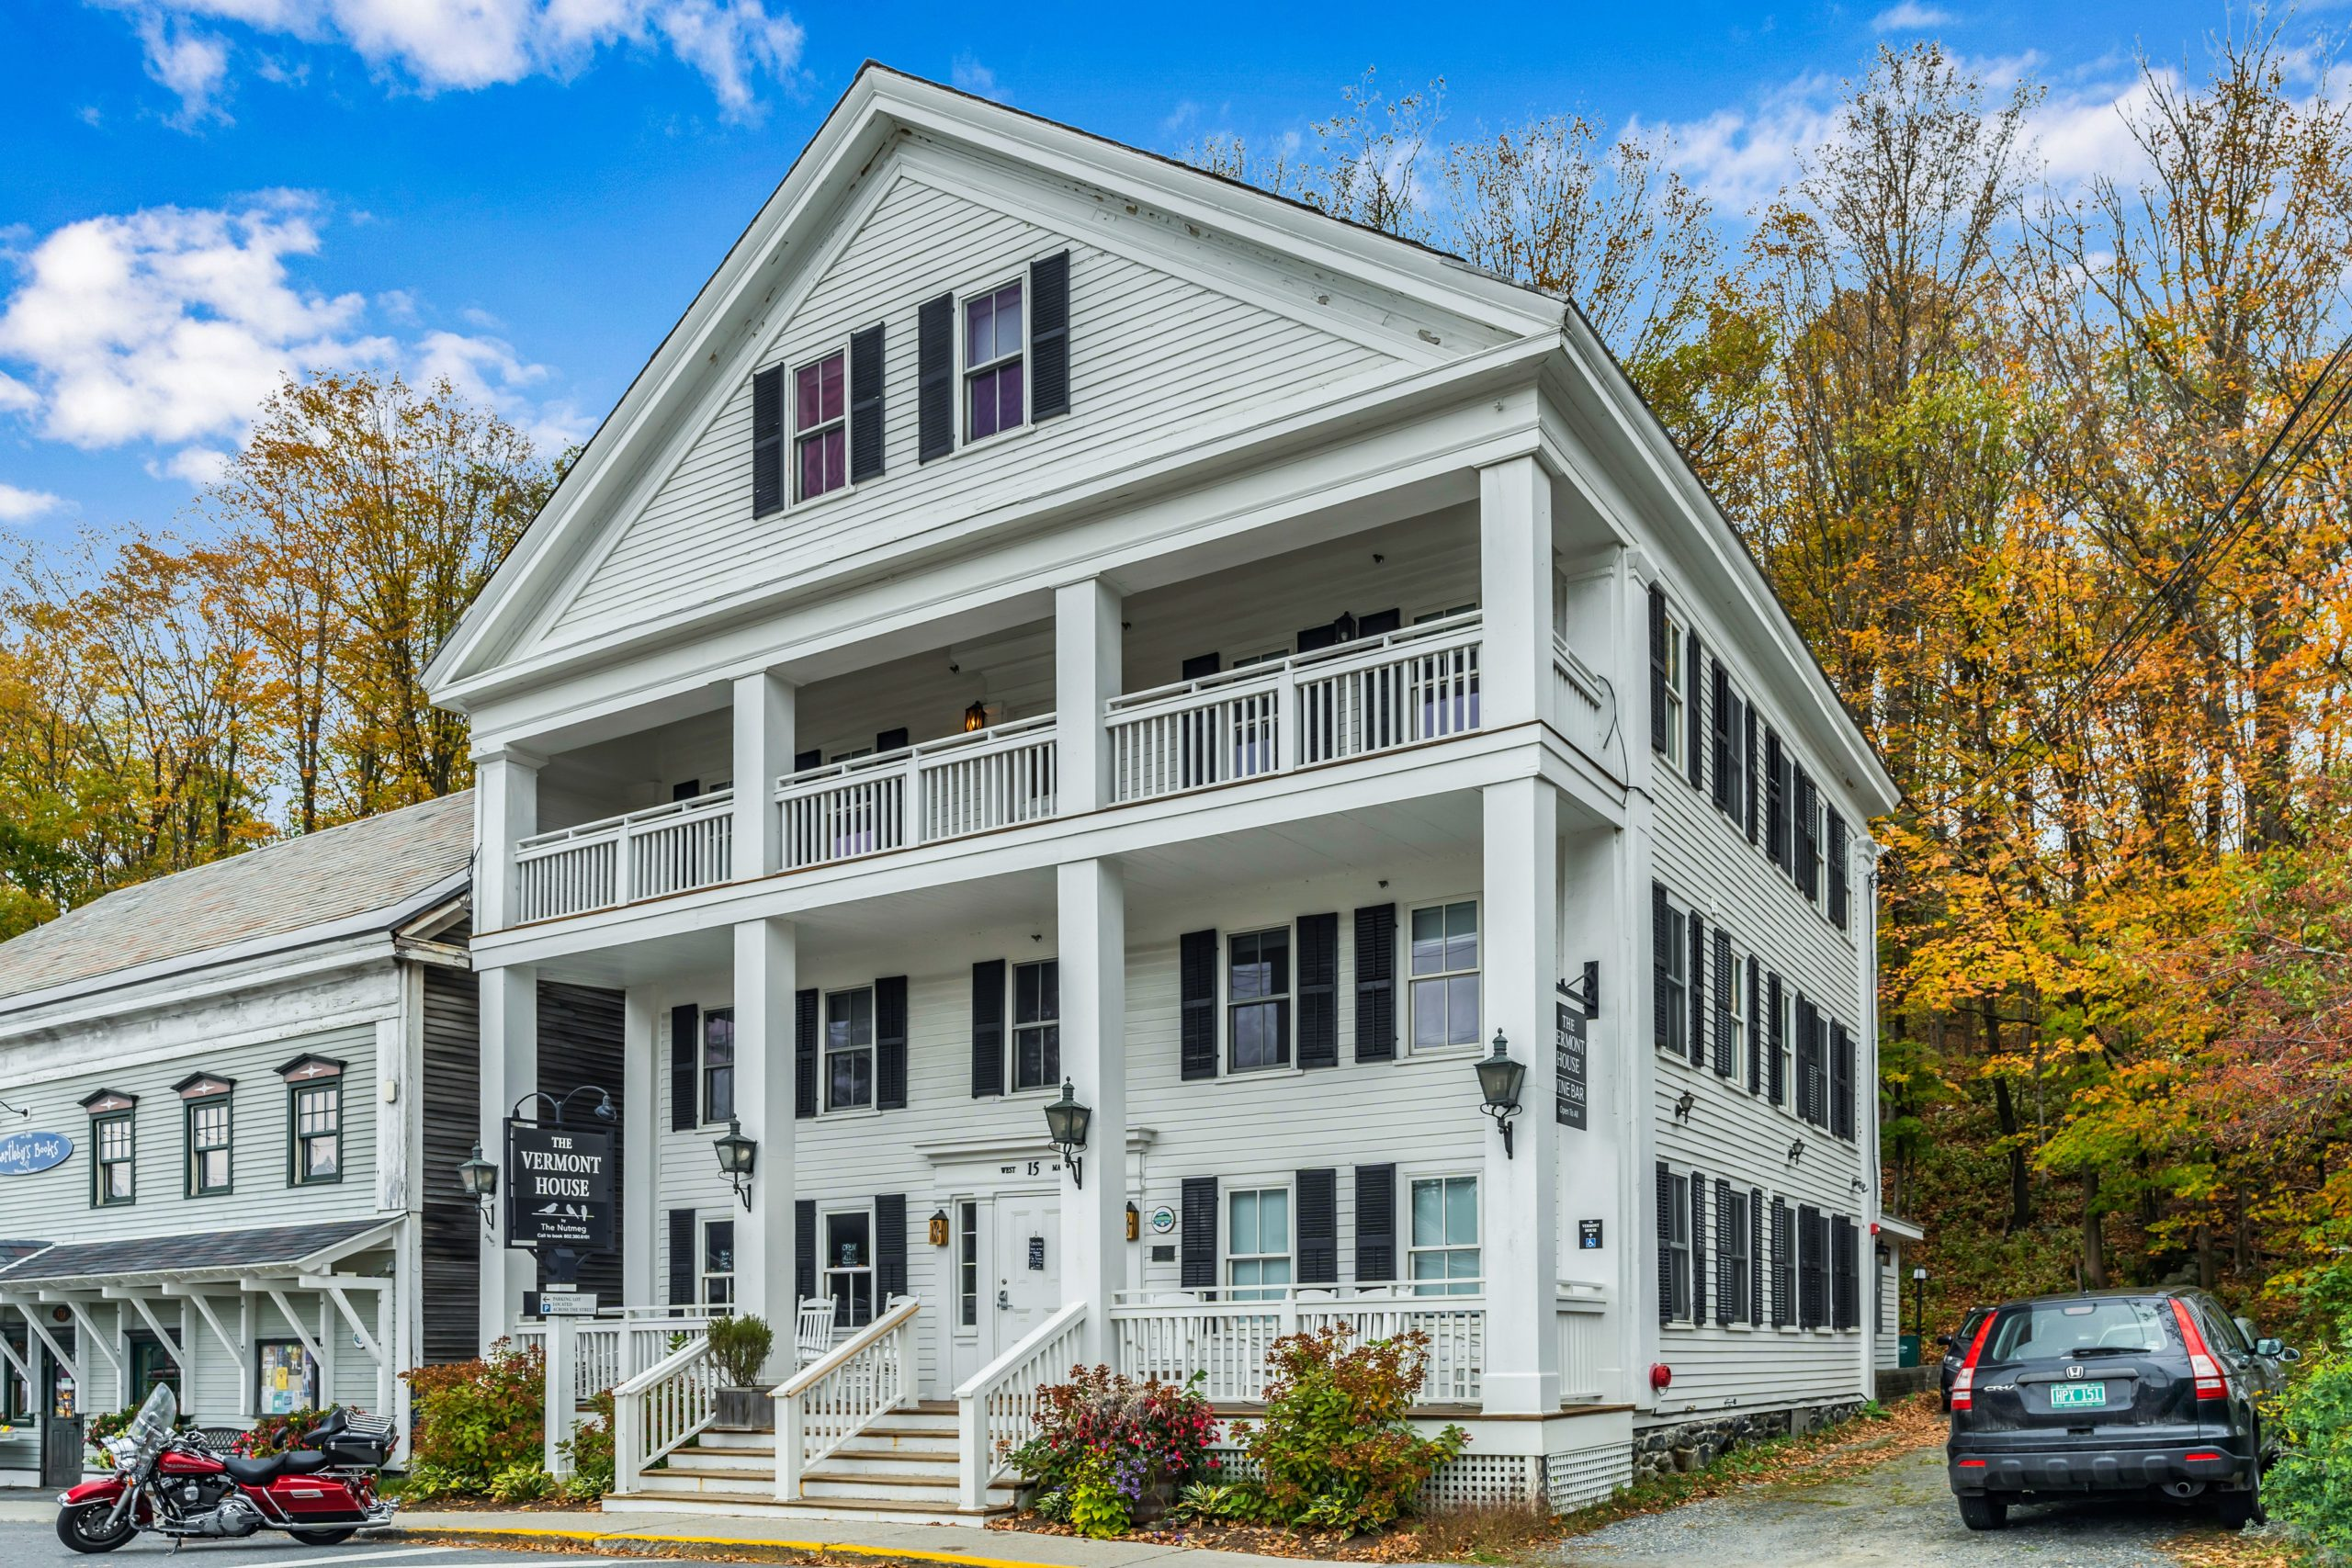 Southern Vermont – Newly refurbished Inn for Sale